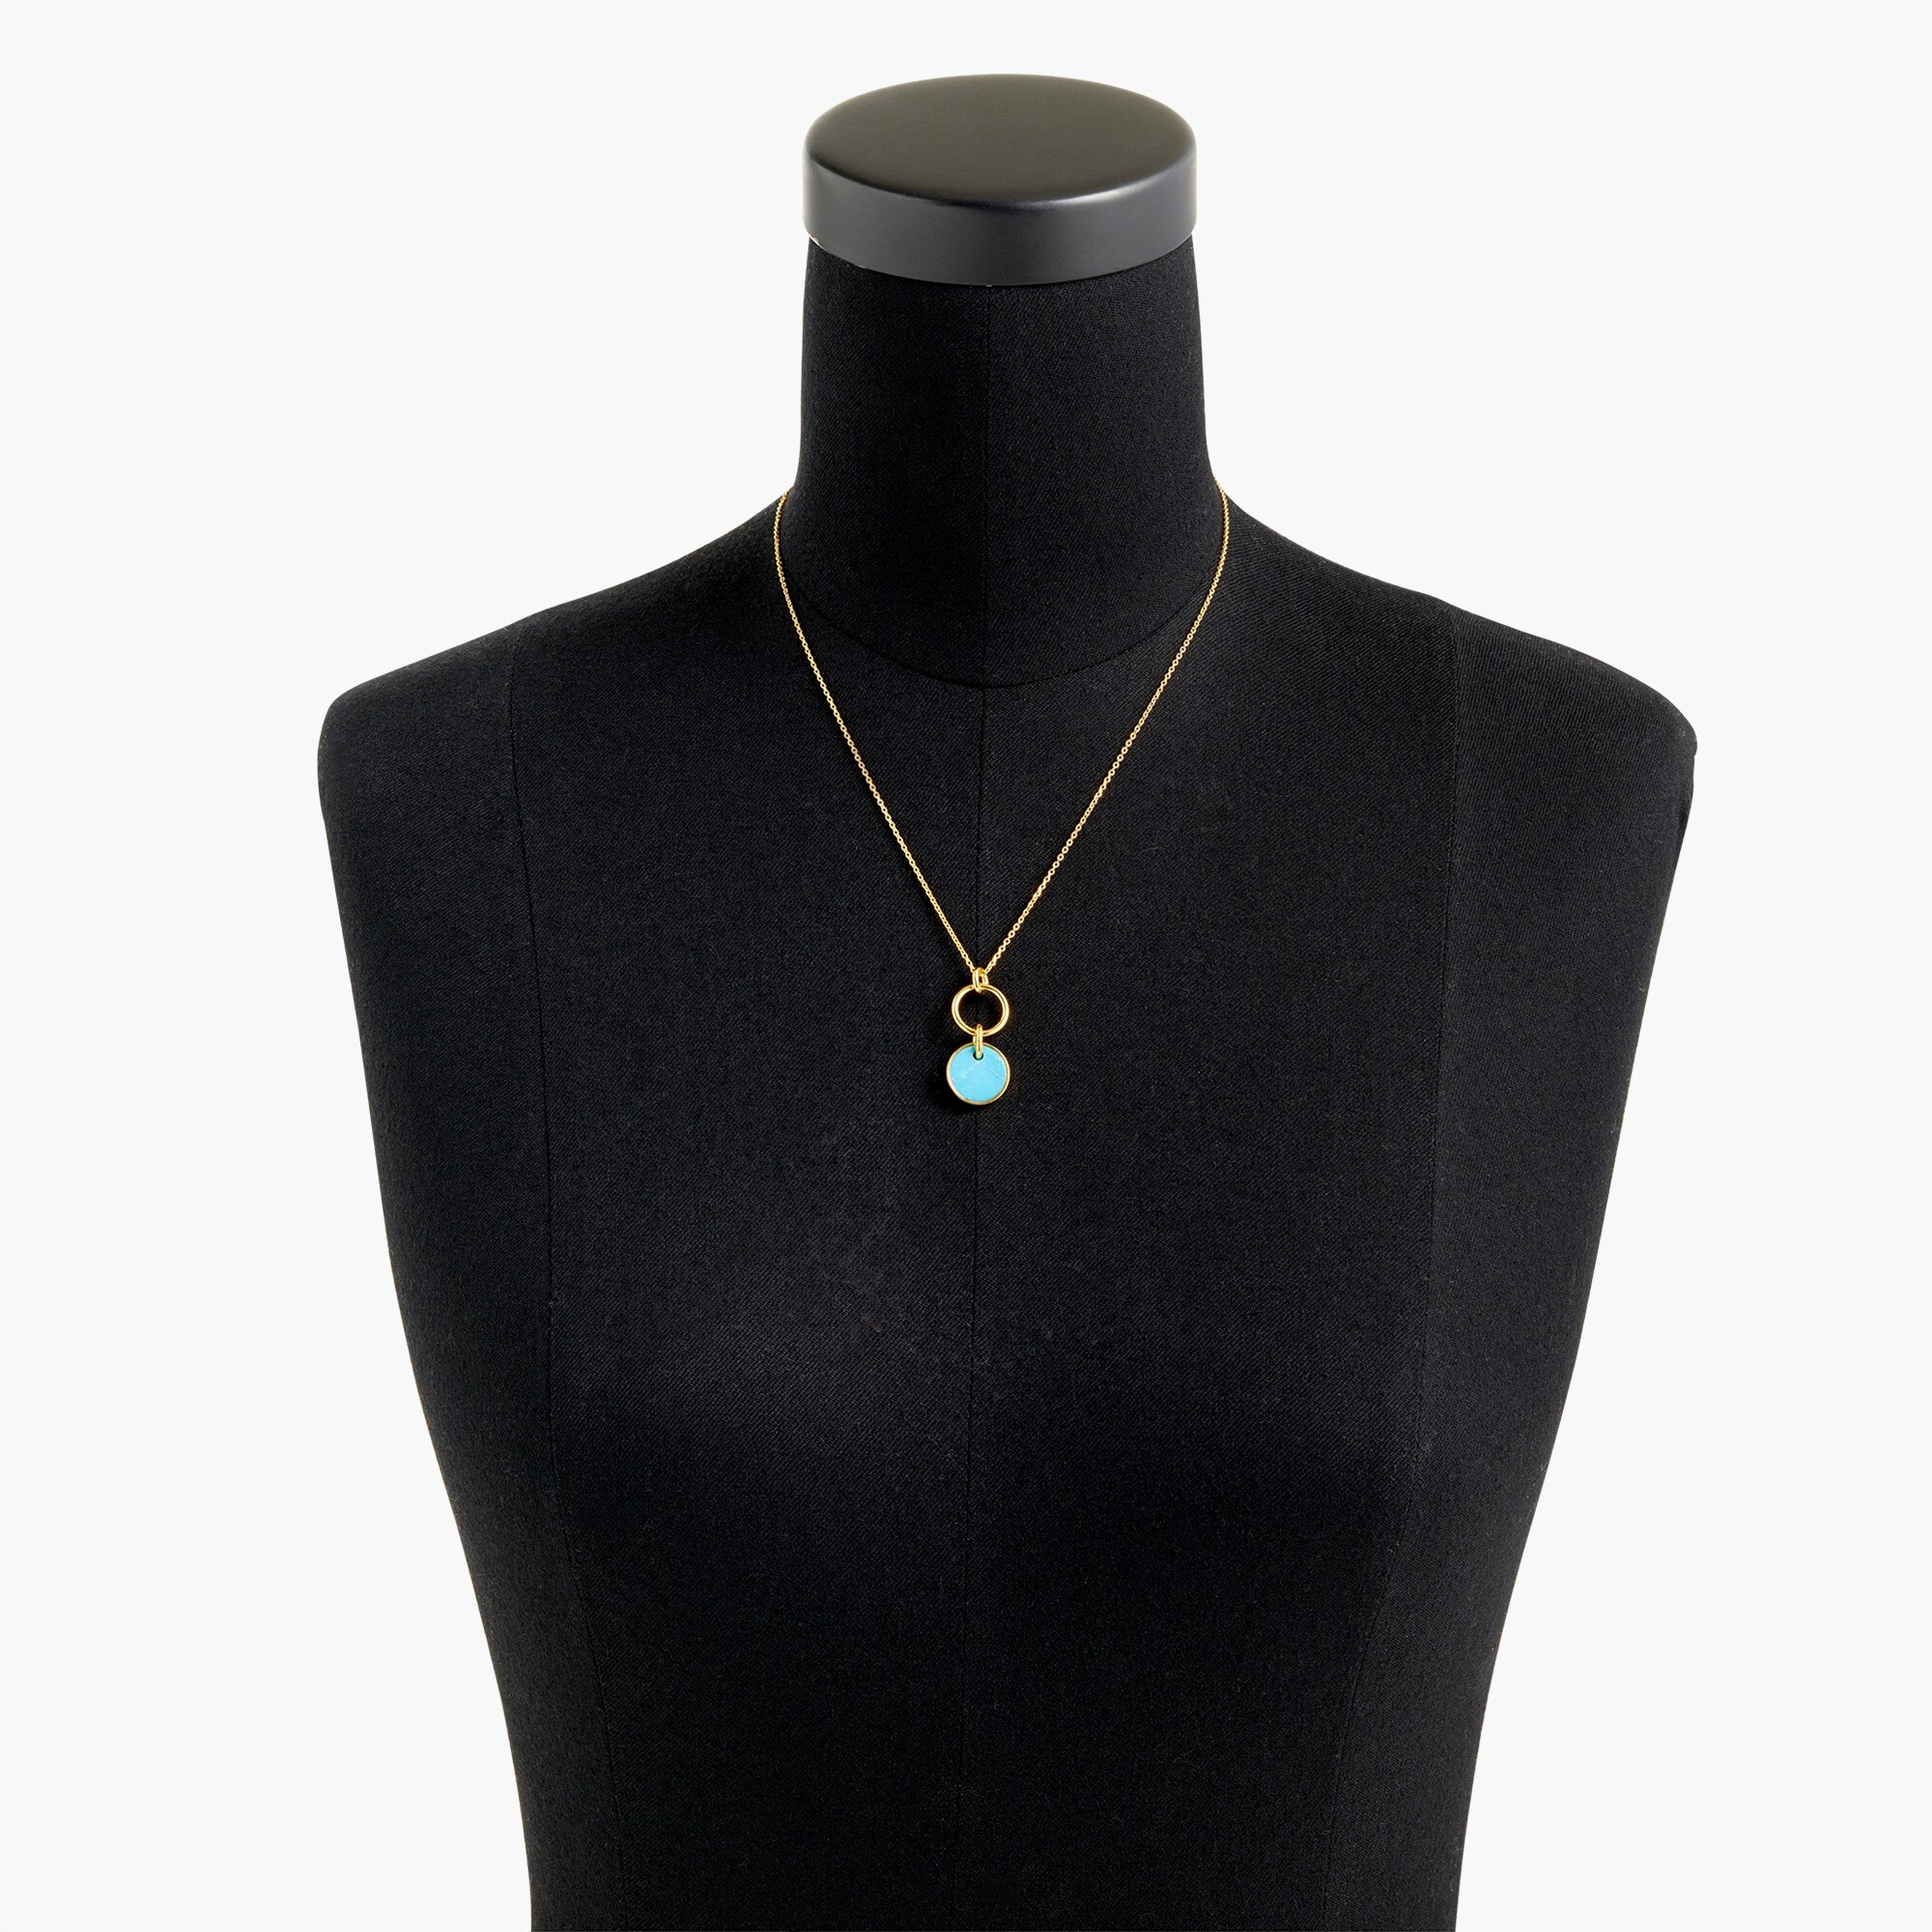 Demi-fine 14k gold-plated turquoise pendant necklace